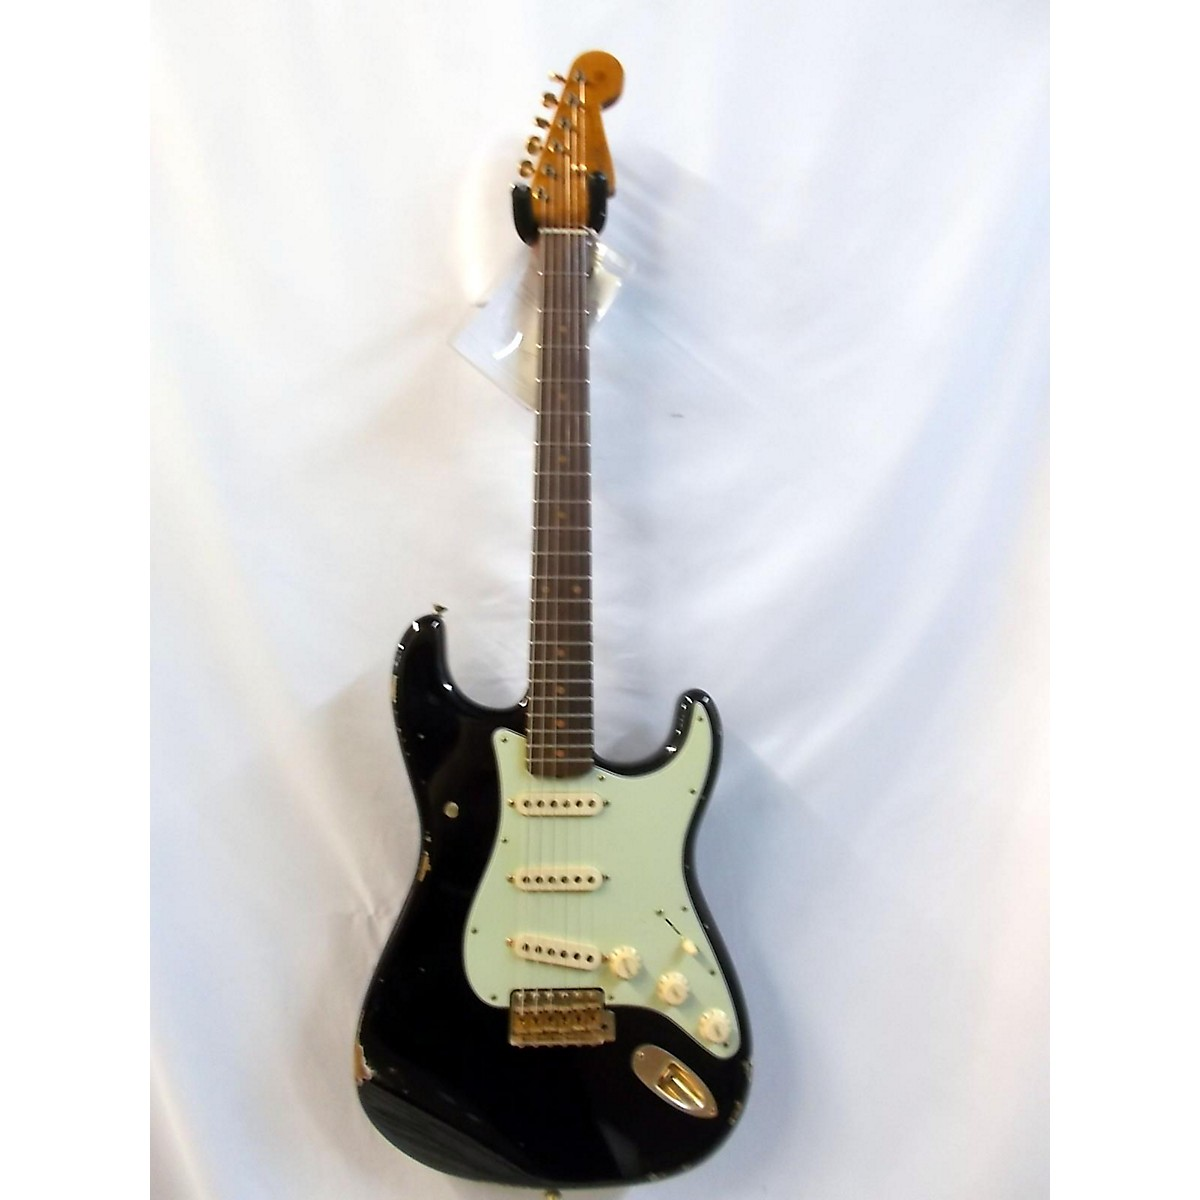 Fender 2018 Custome Shopblack Gold Stratocaster Solid Body Electric Guitar